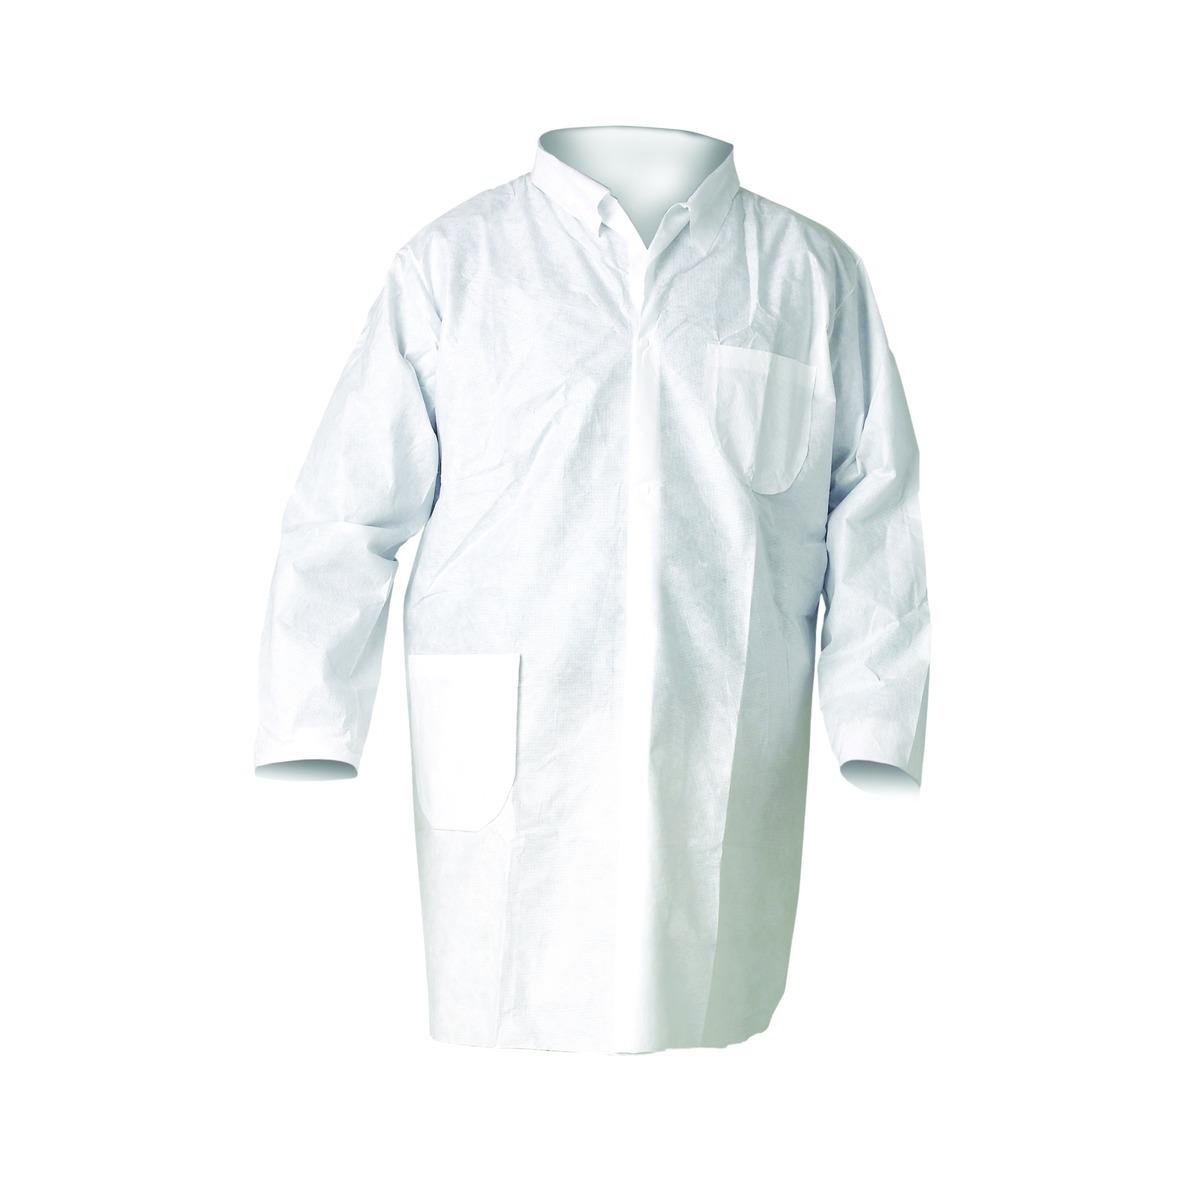 Disposable Lab Coats, Kimberly-Clark